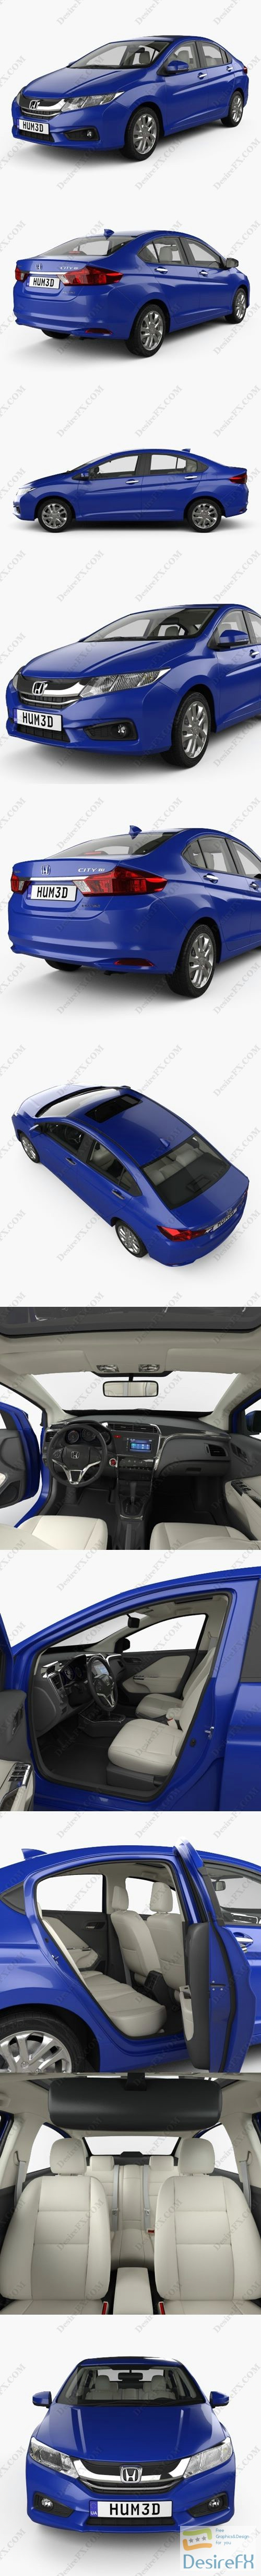 3d-models - Honda City with HQ interior 2014 3D Model